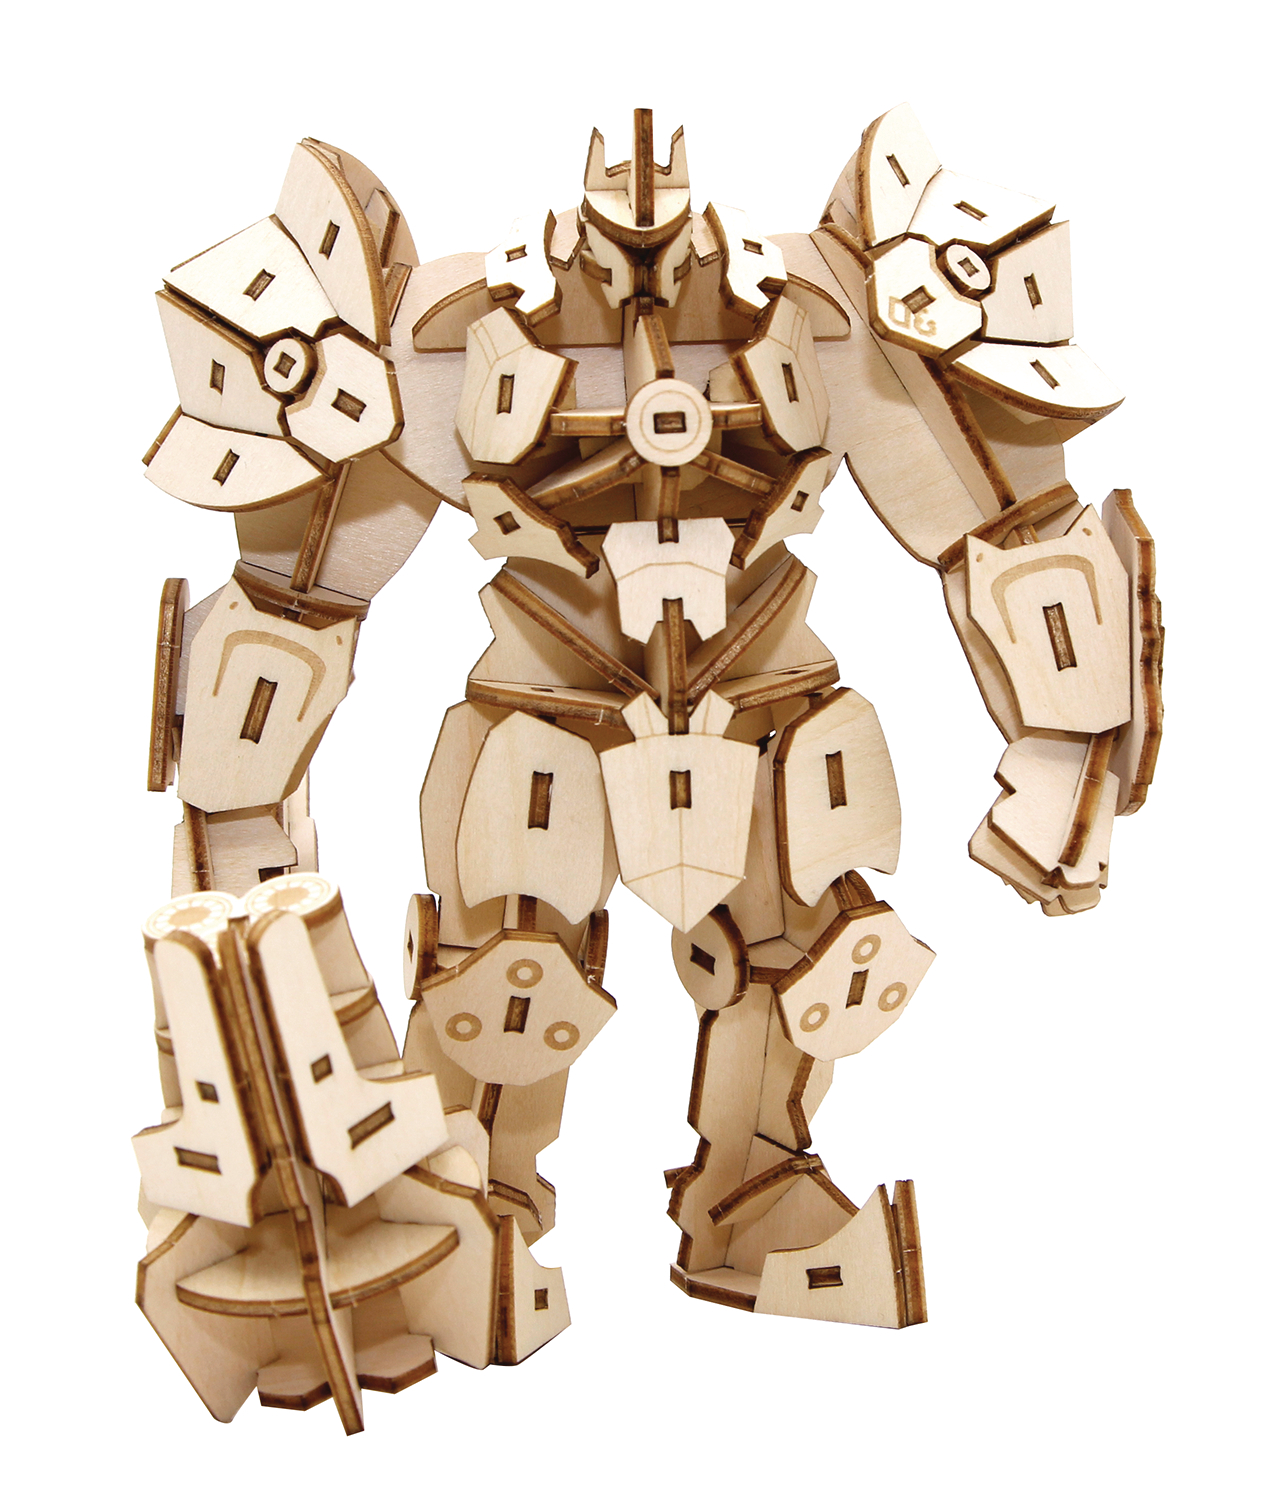 INCREDIBUILDS OW REINHARDT 3D WOOD MODEL & POSTER